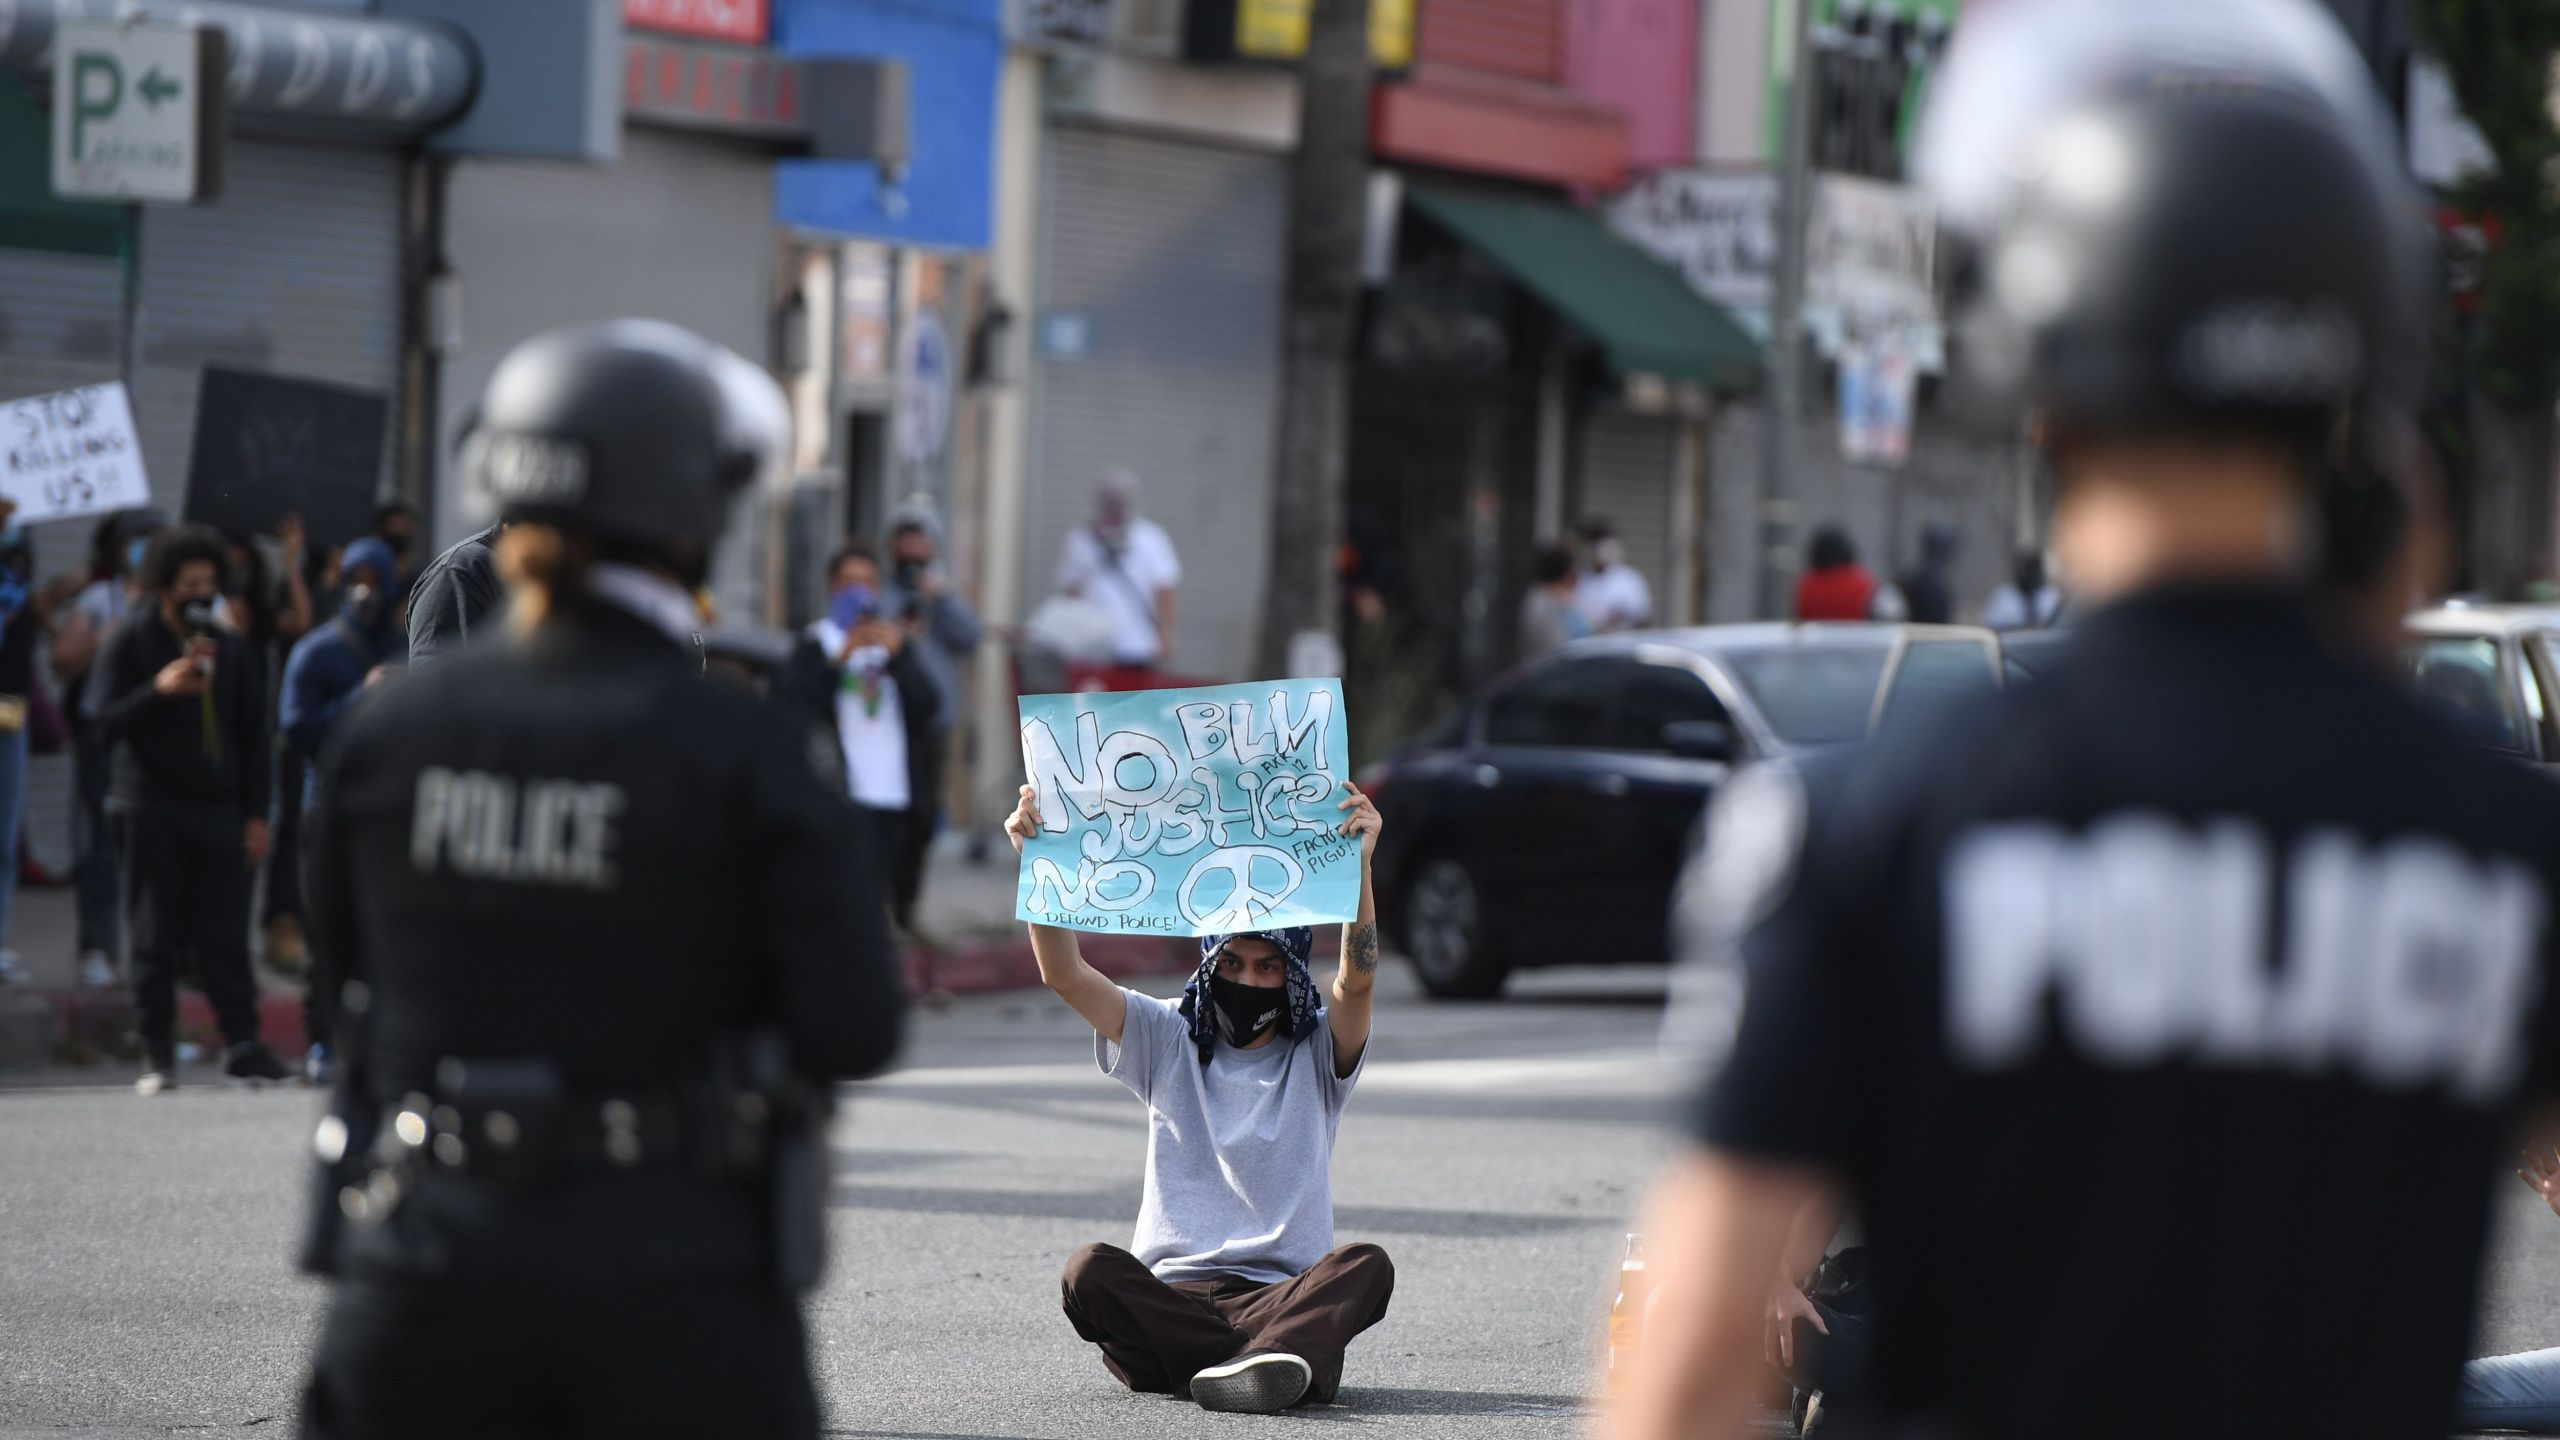 A demonstrator holds a sign as he sits in front of police in Van Nuys on June 1, 2020. (Robyn Beck / AFP / Getty Images)